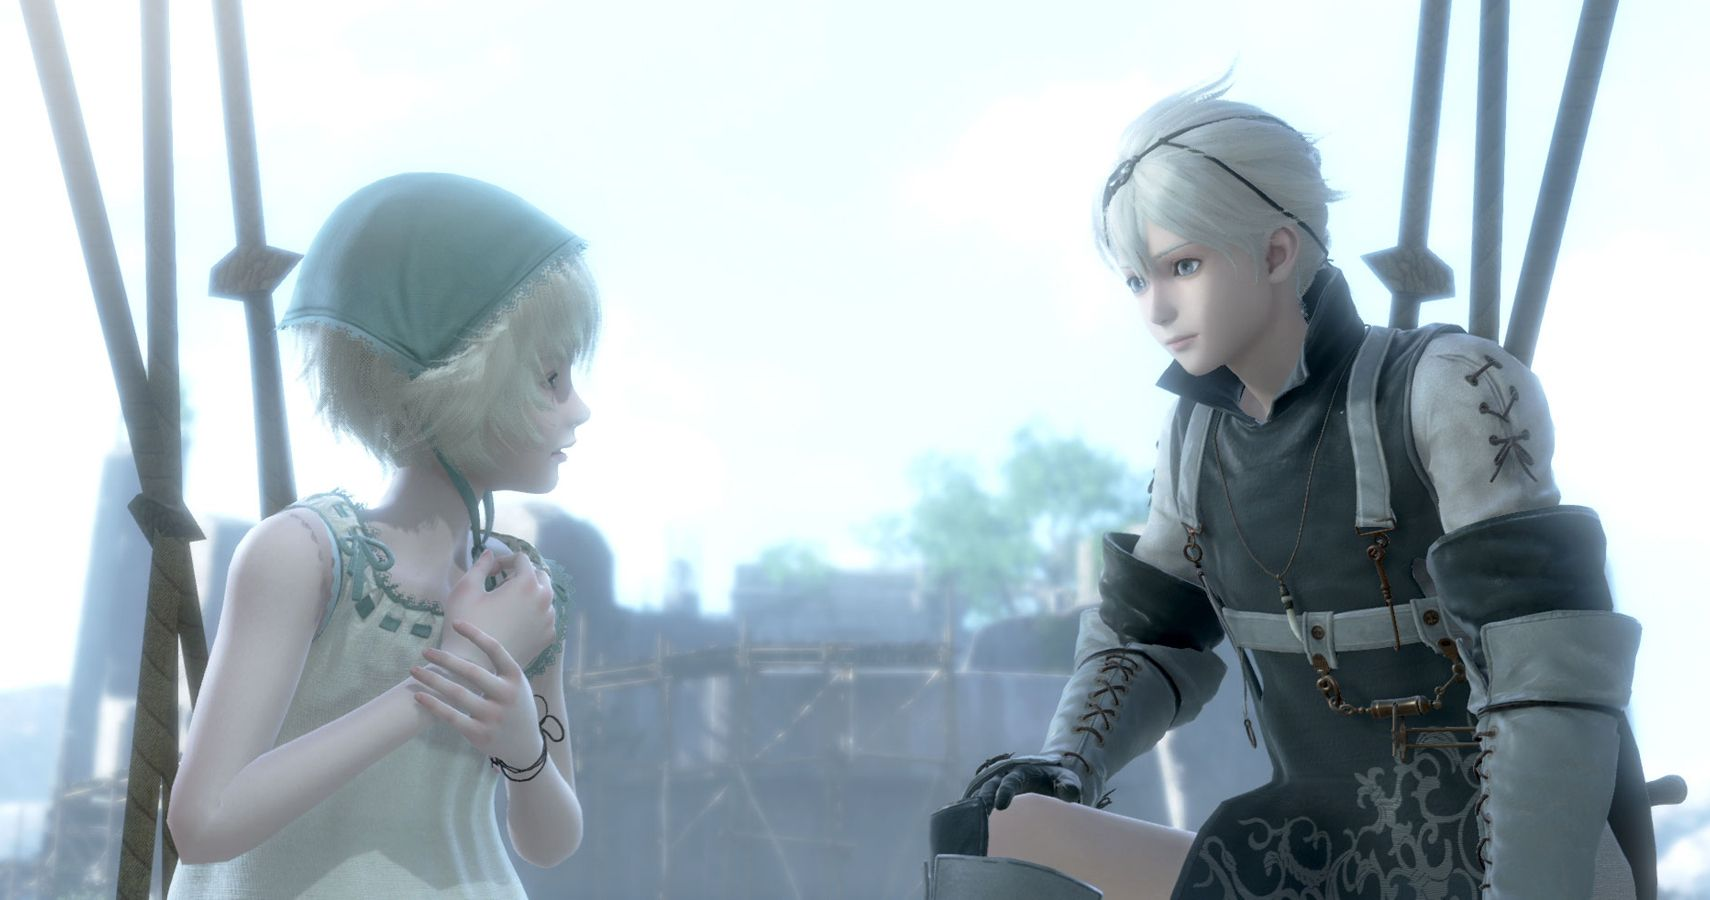 Nier Replicant Preview: The Execution Nier's Story Always Deserved